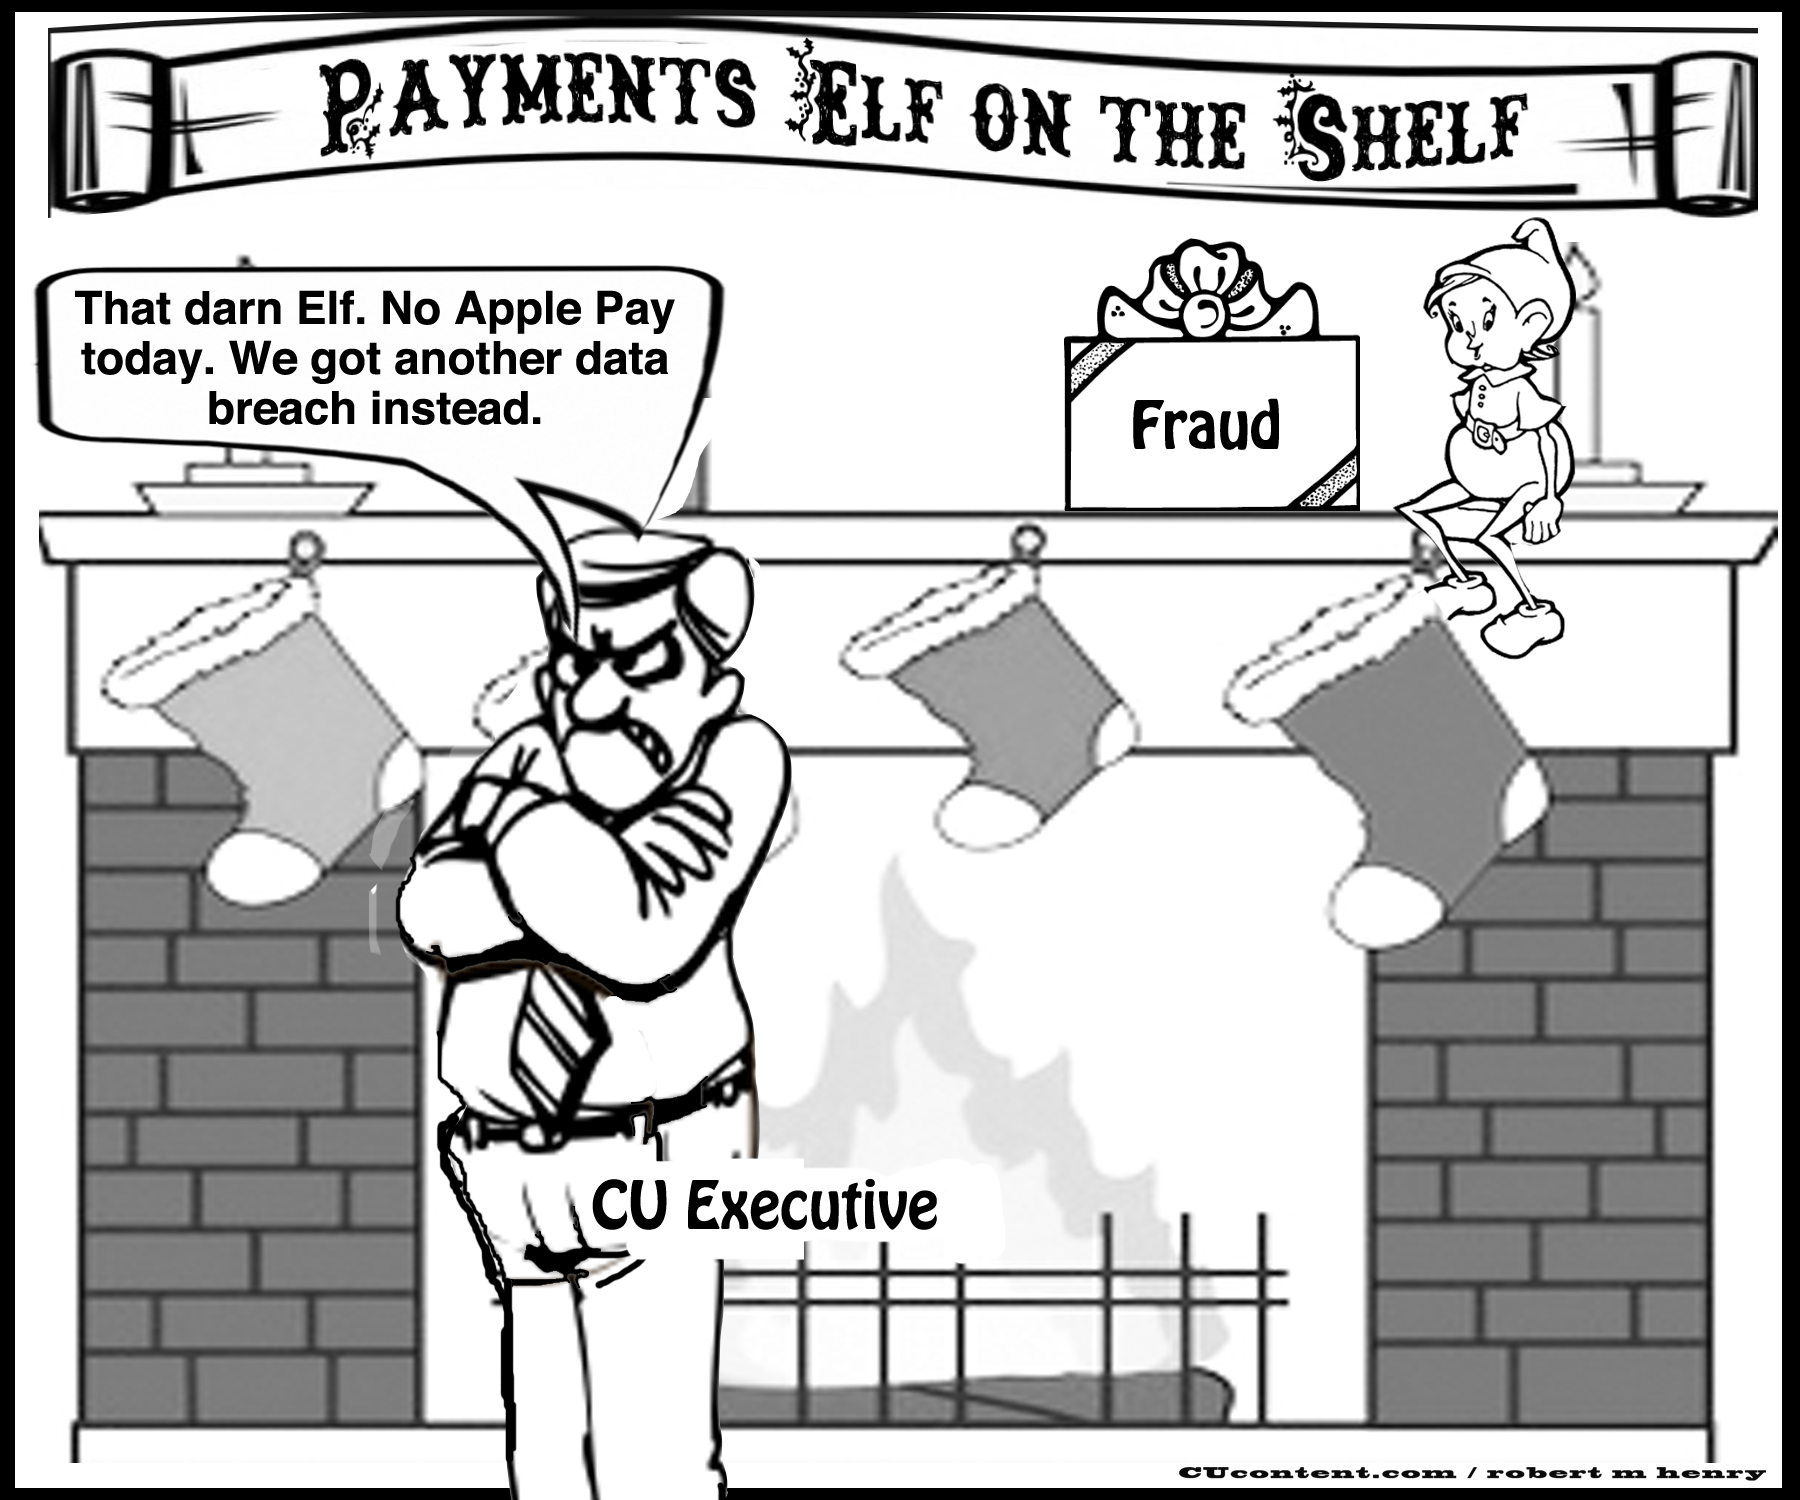 elf on the shelf payments editorial cartoon